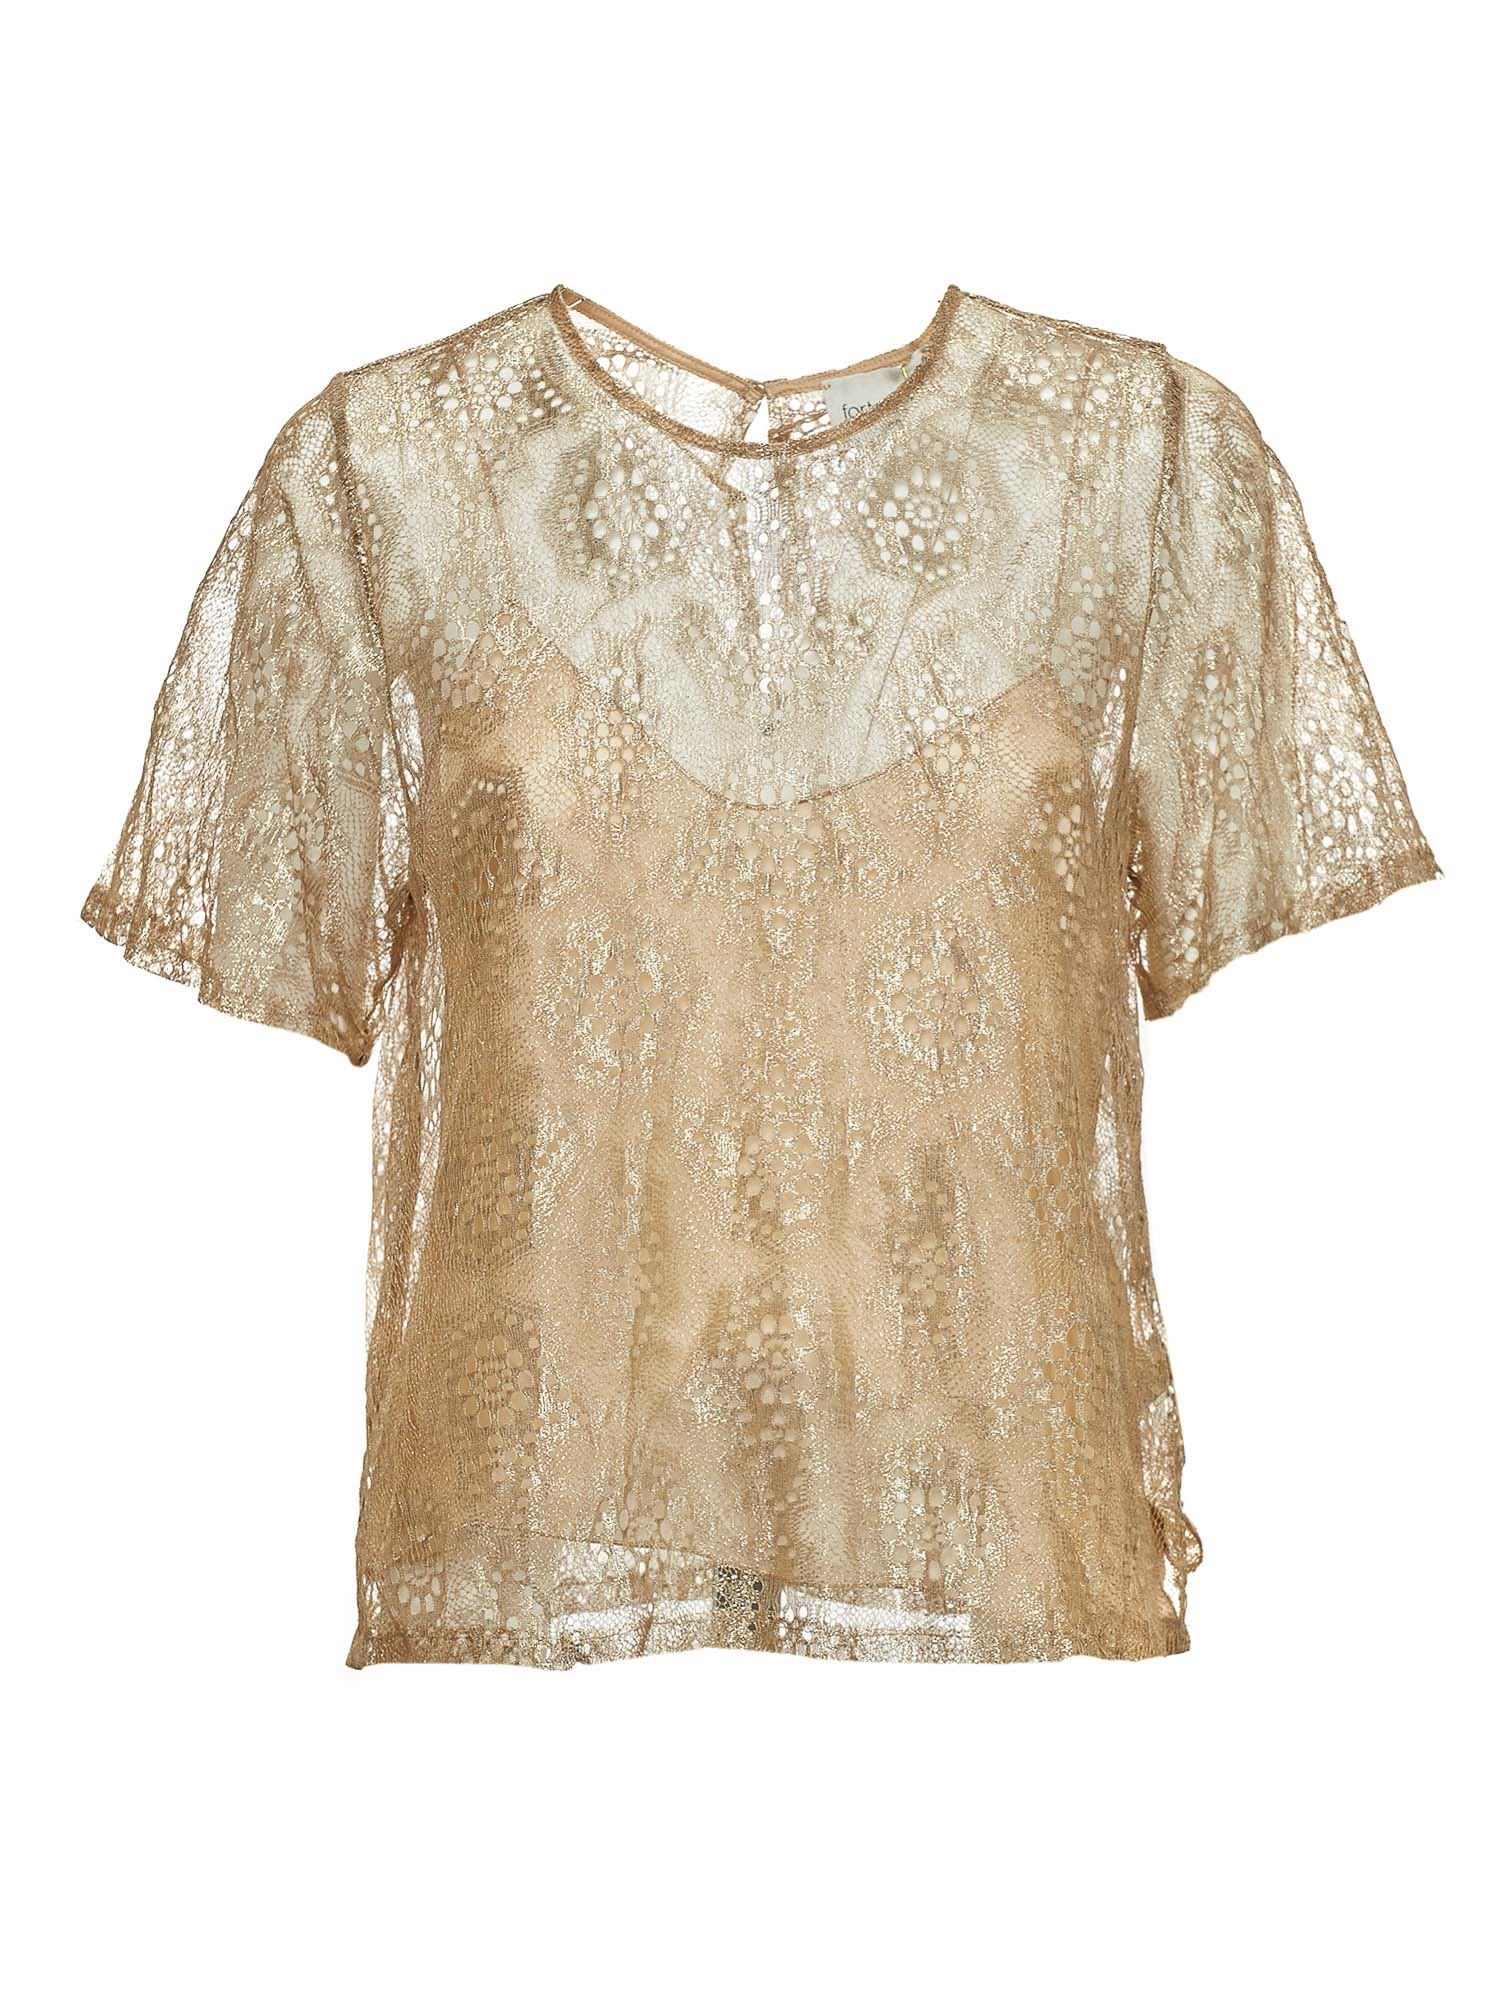 Forte Forte CHANTILLY LACE LUREX T-SHIRT IN GOLD COLOR